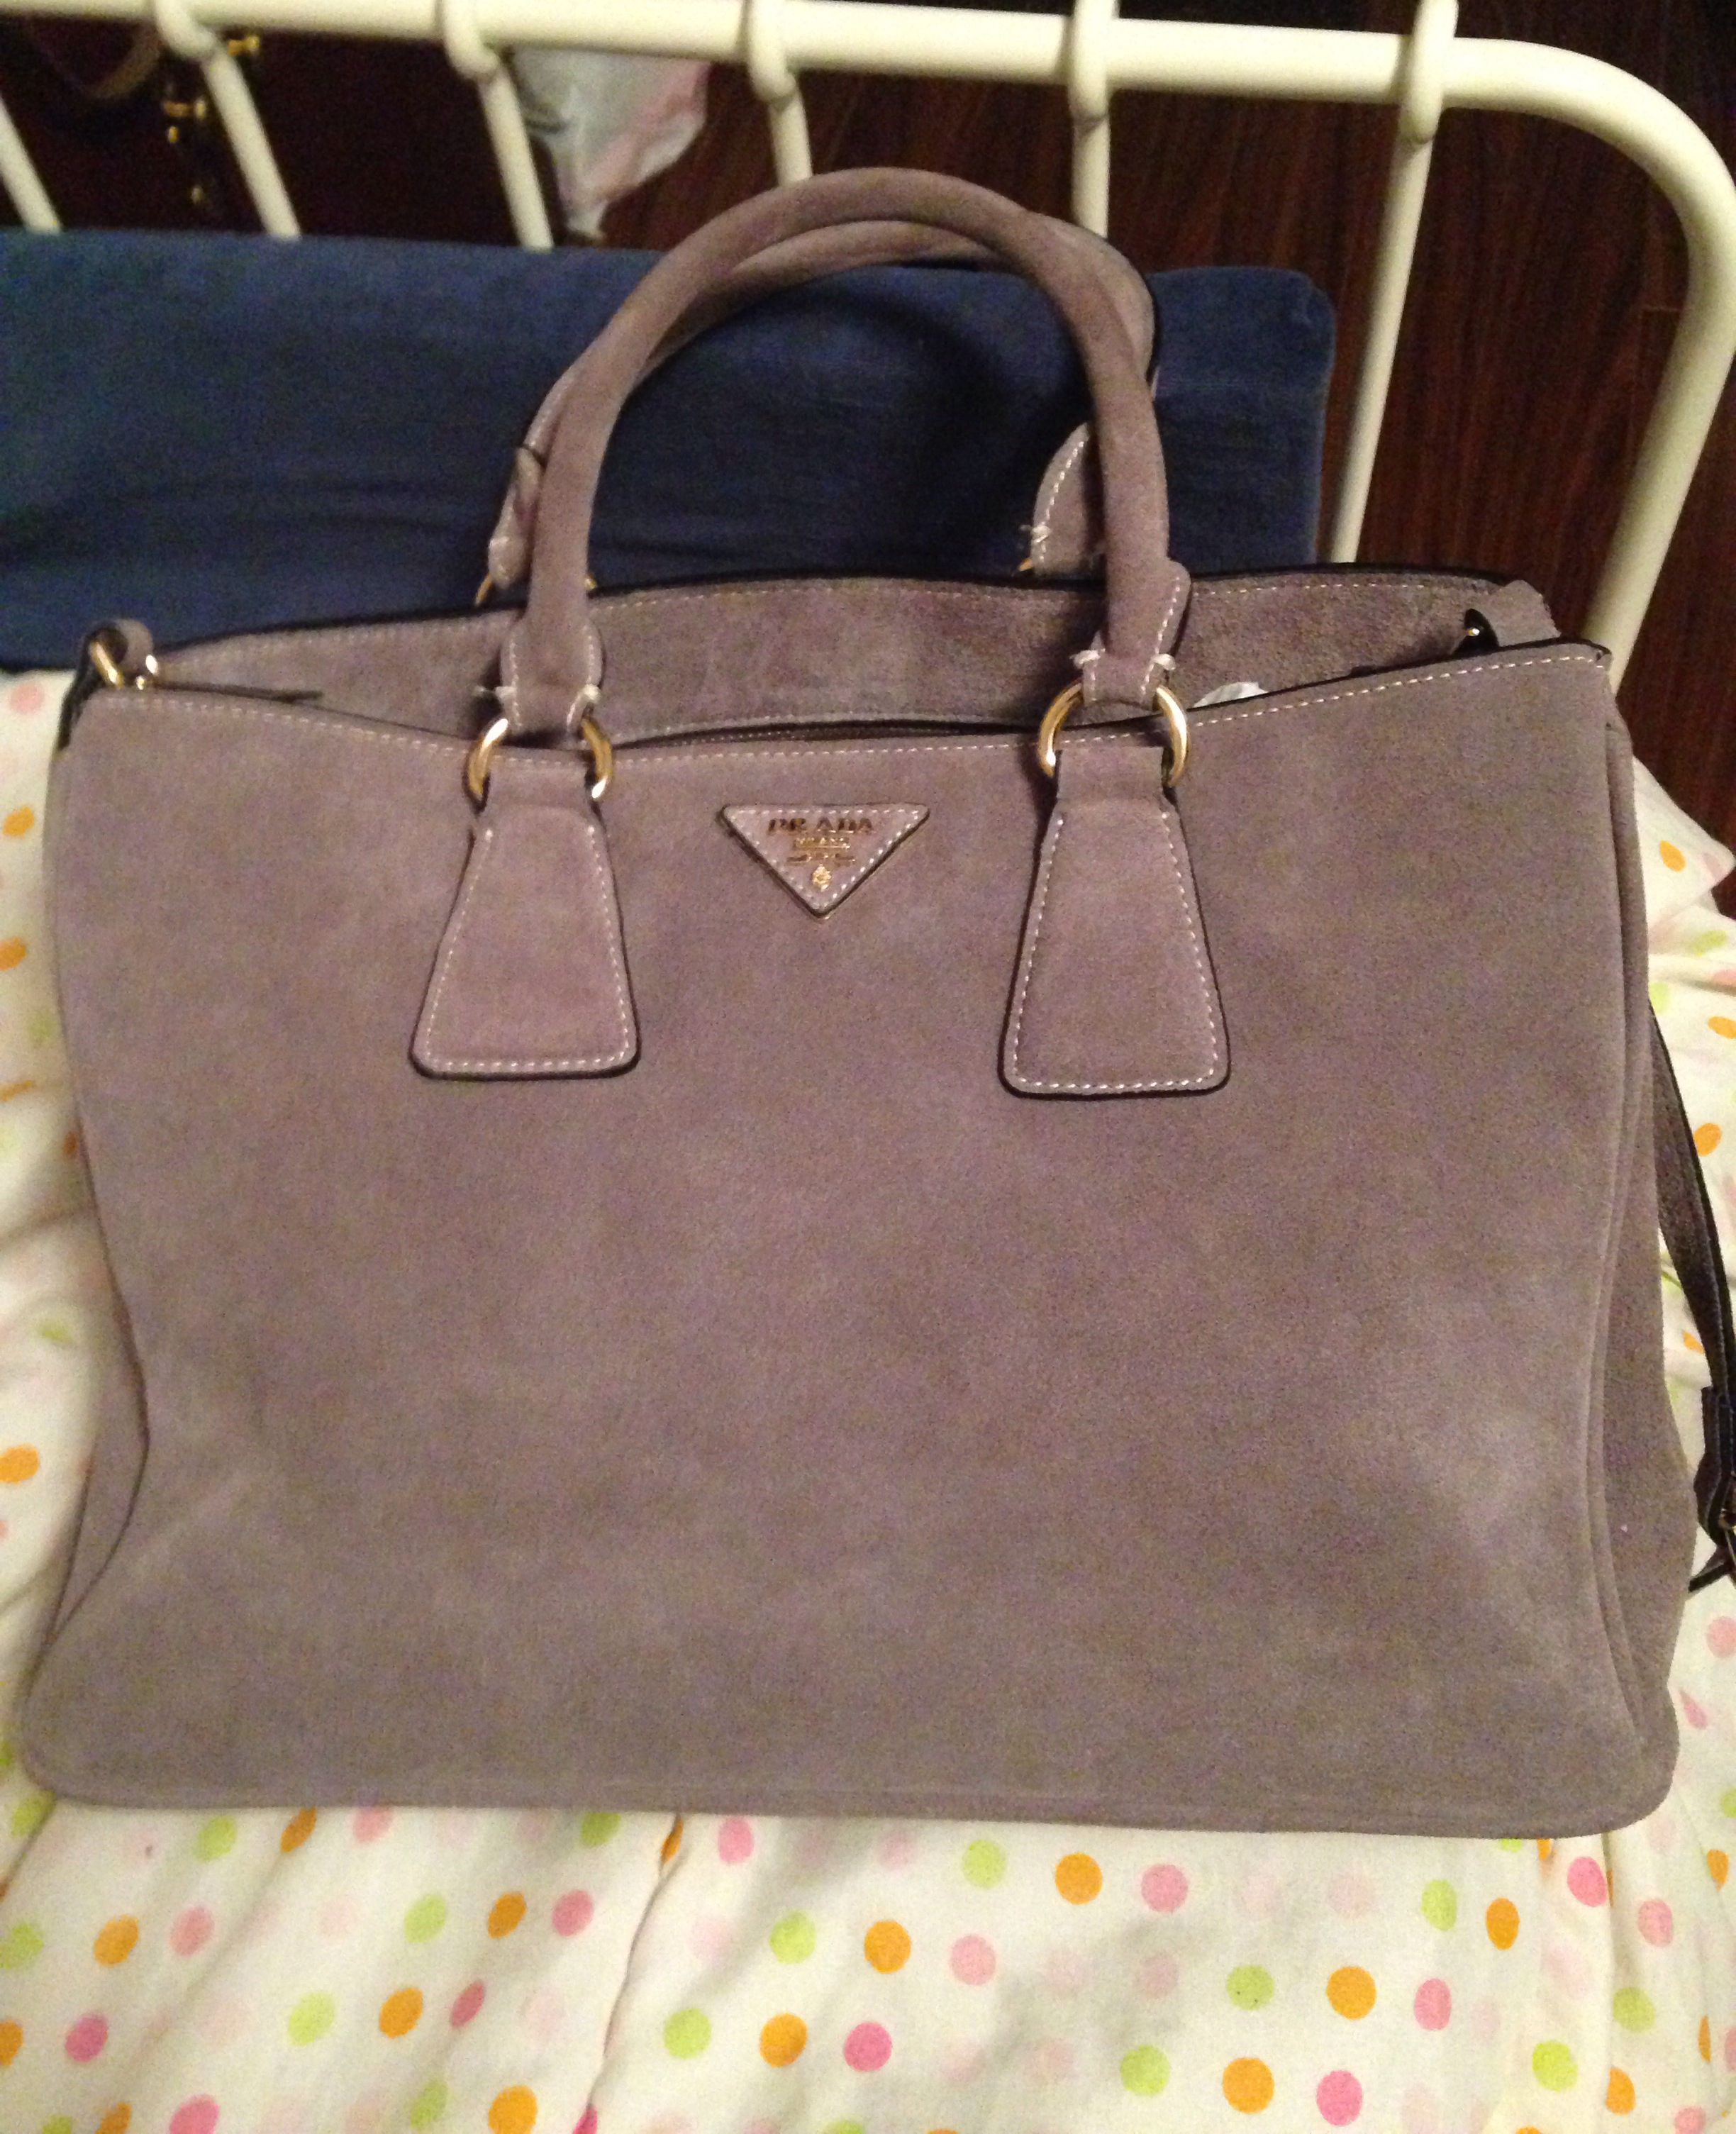 Prada Purse B8888 Vela Nero Purses Handbags